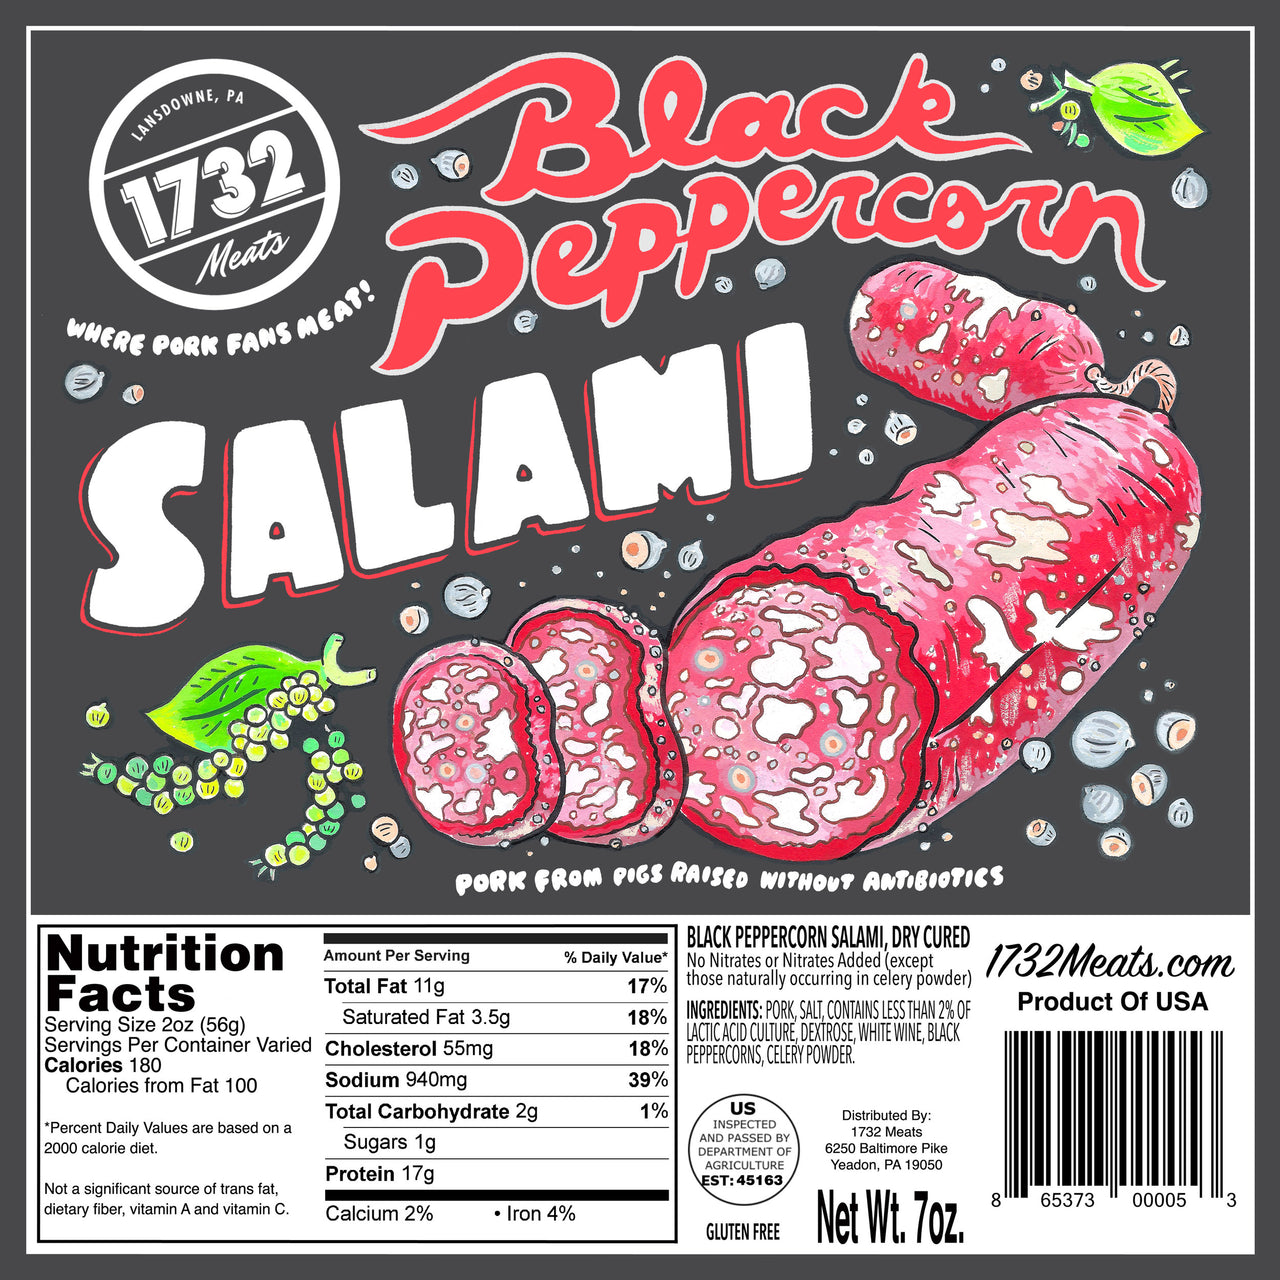 1732 Meats Black Peppercorn Salami